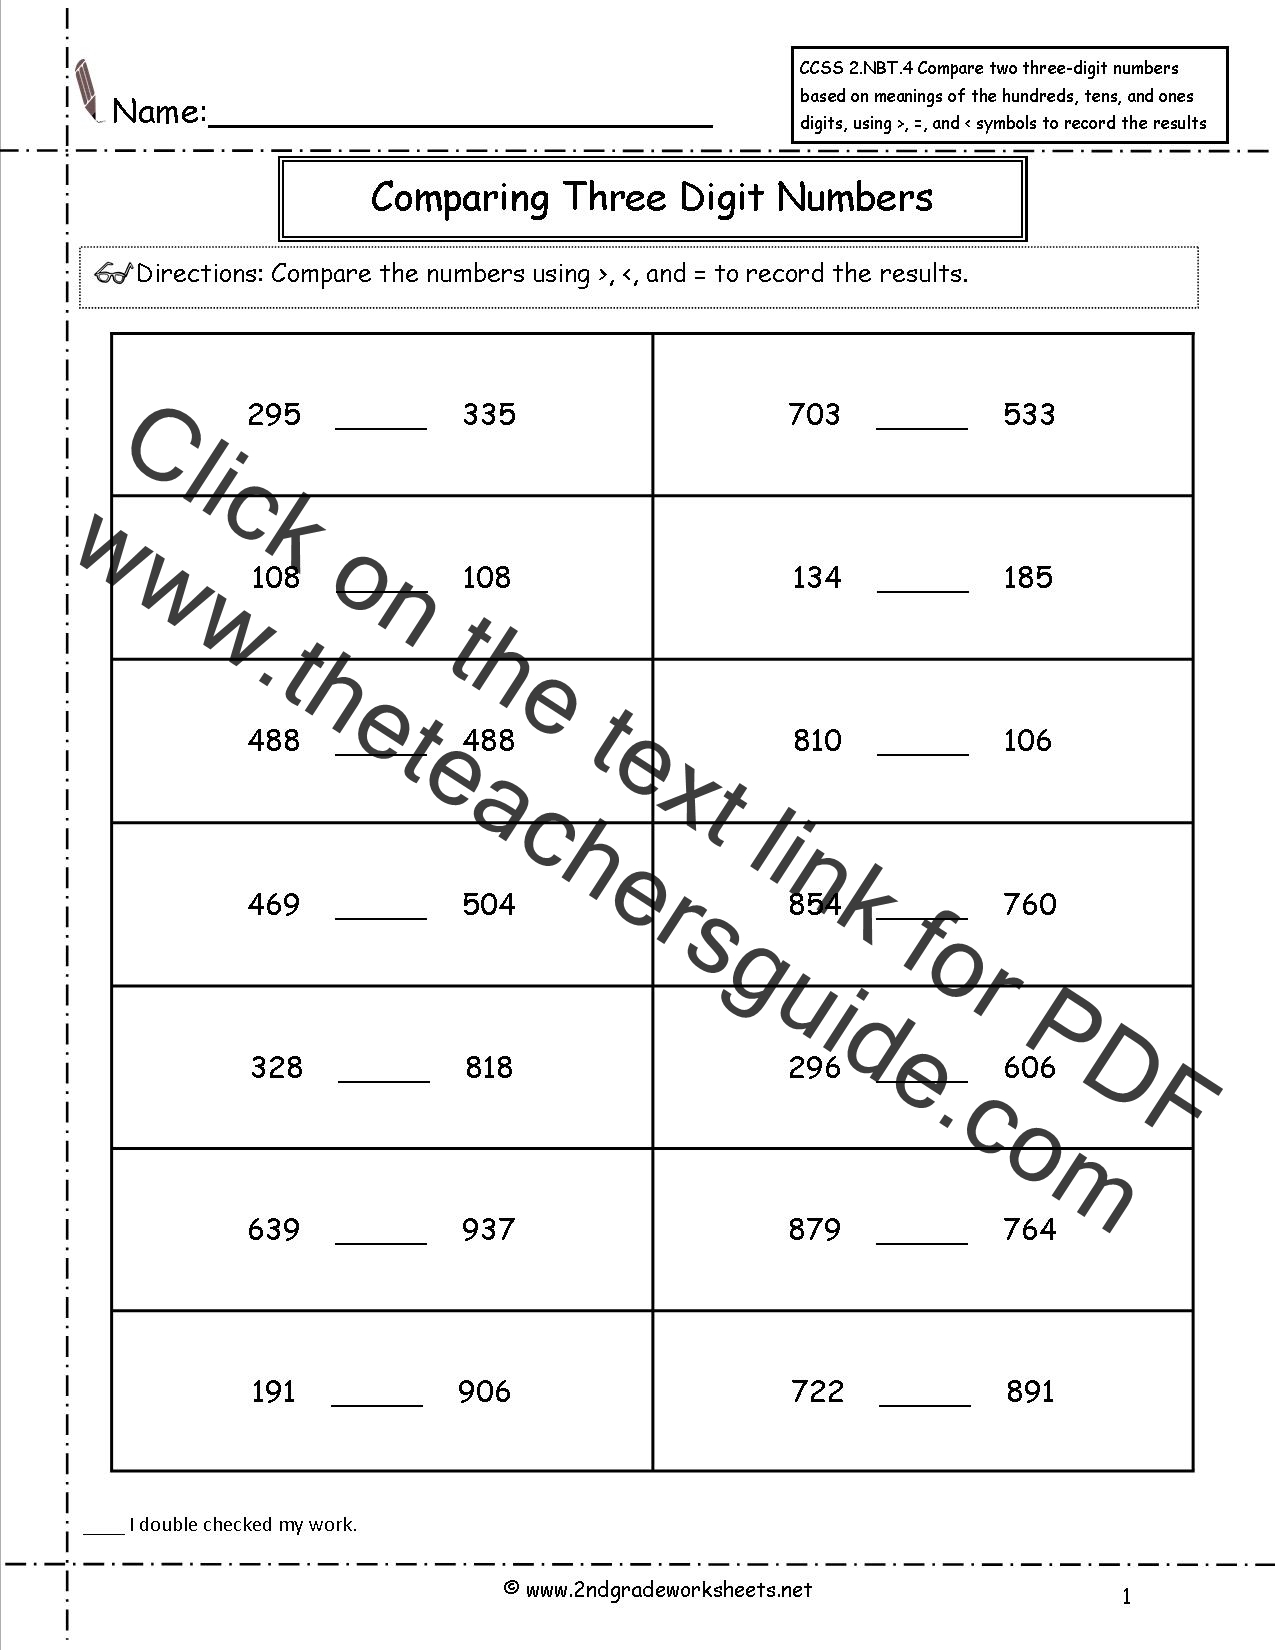 CCSS 2NBT4 Worksheets Comparing three digit numbers – Number and Operations in Base Ten Worksheets